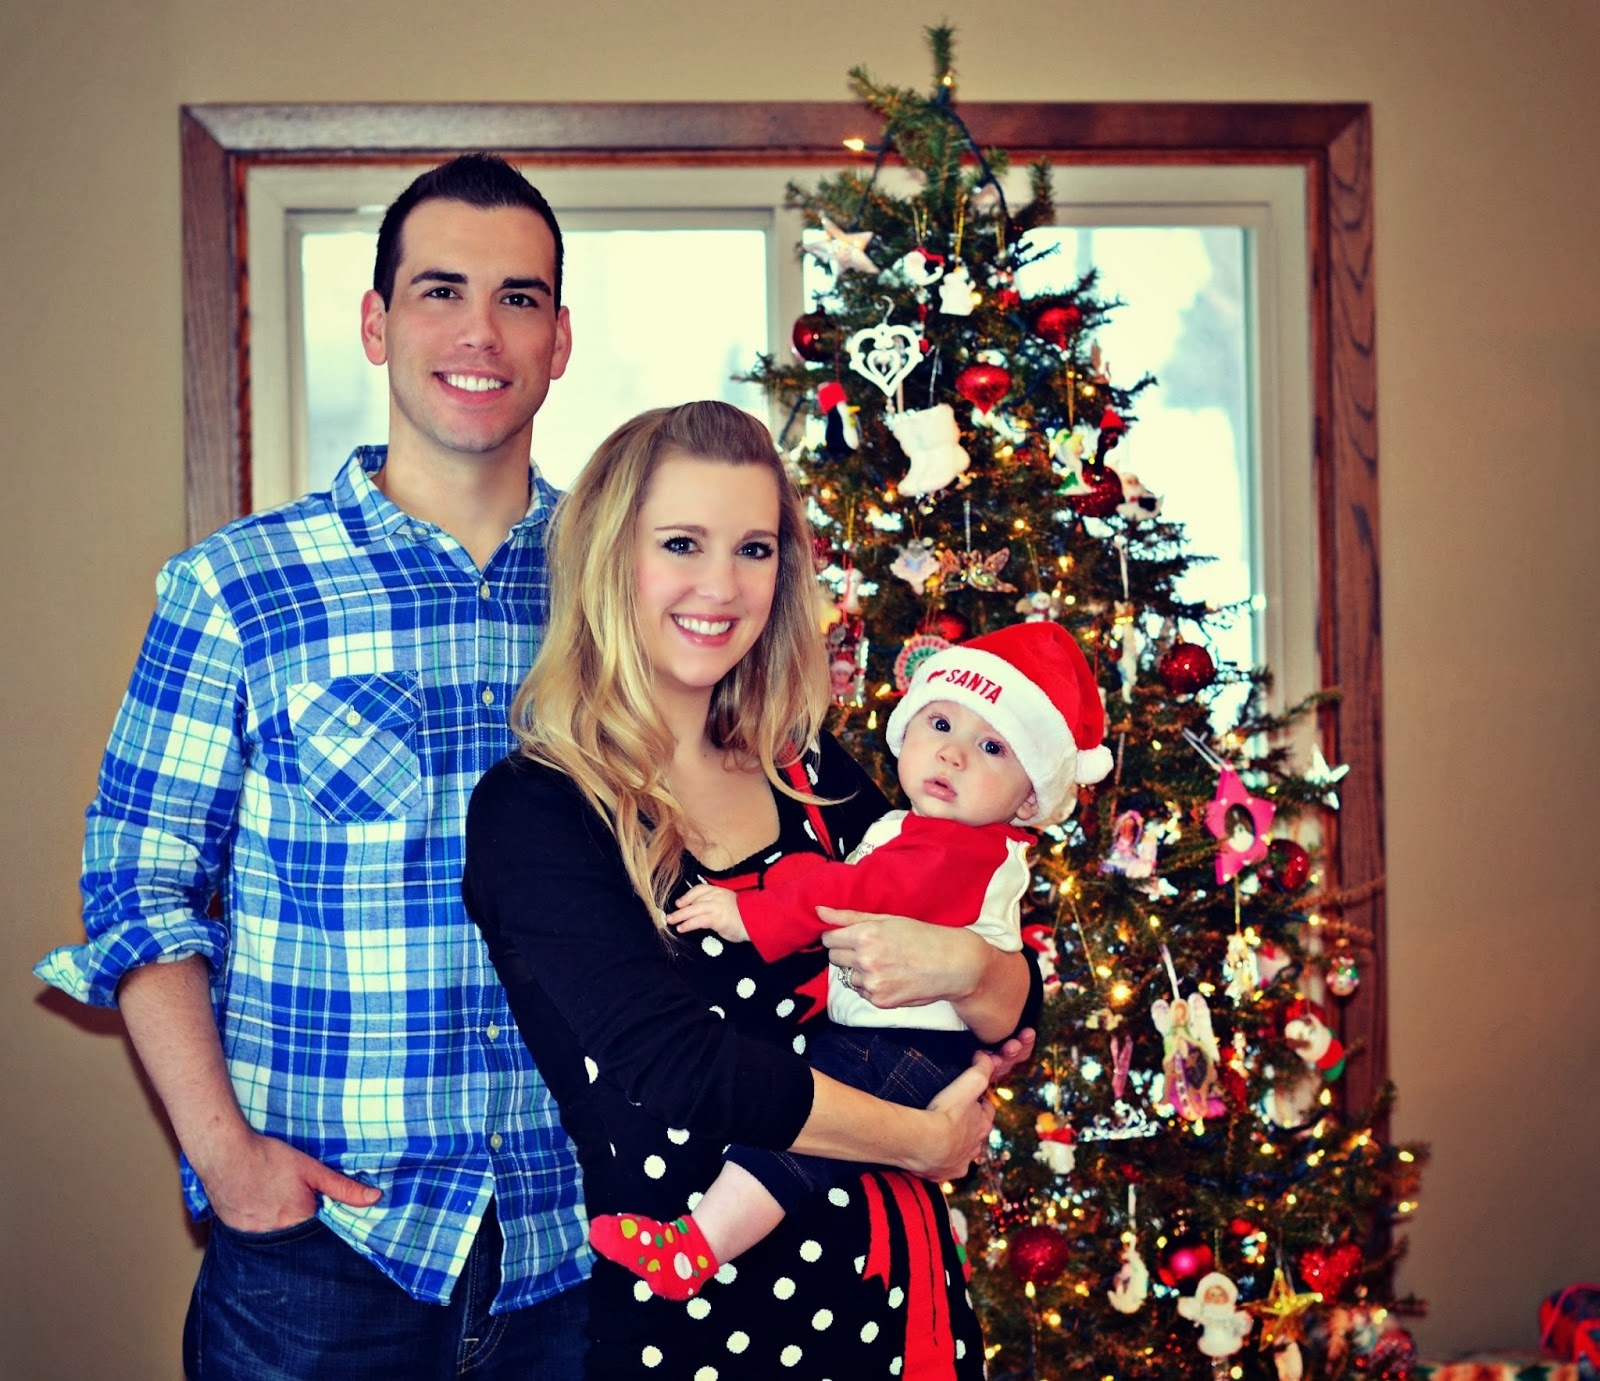 baby's first christmas photo family by christmas tree picture